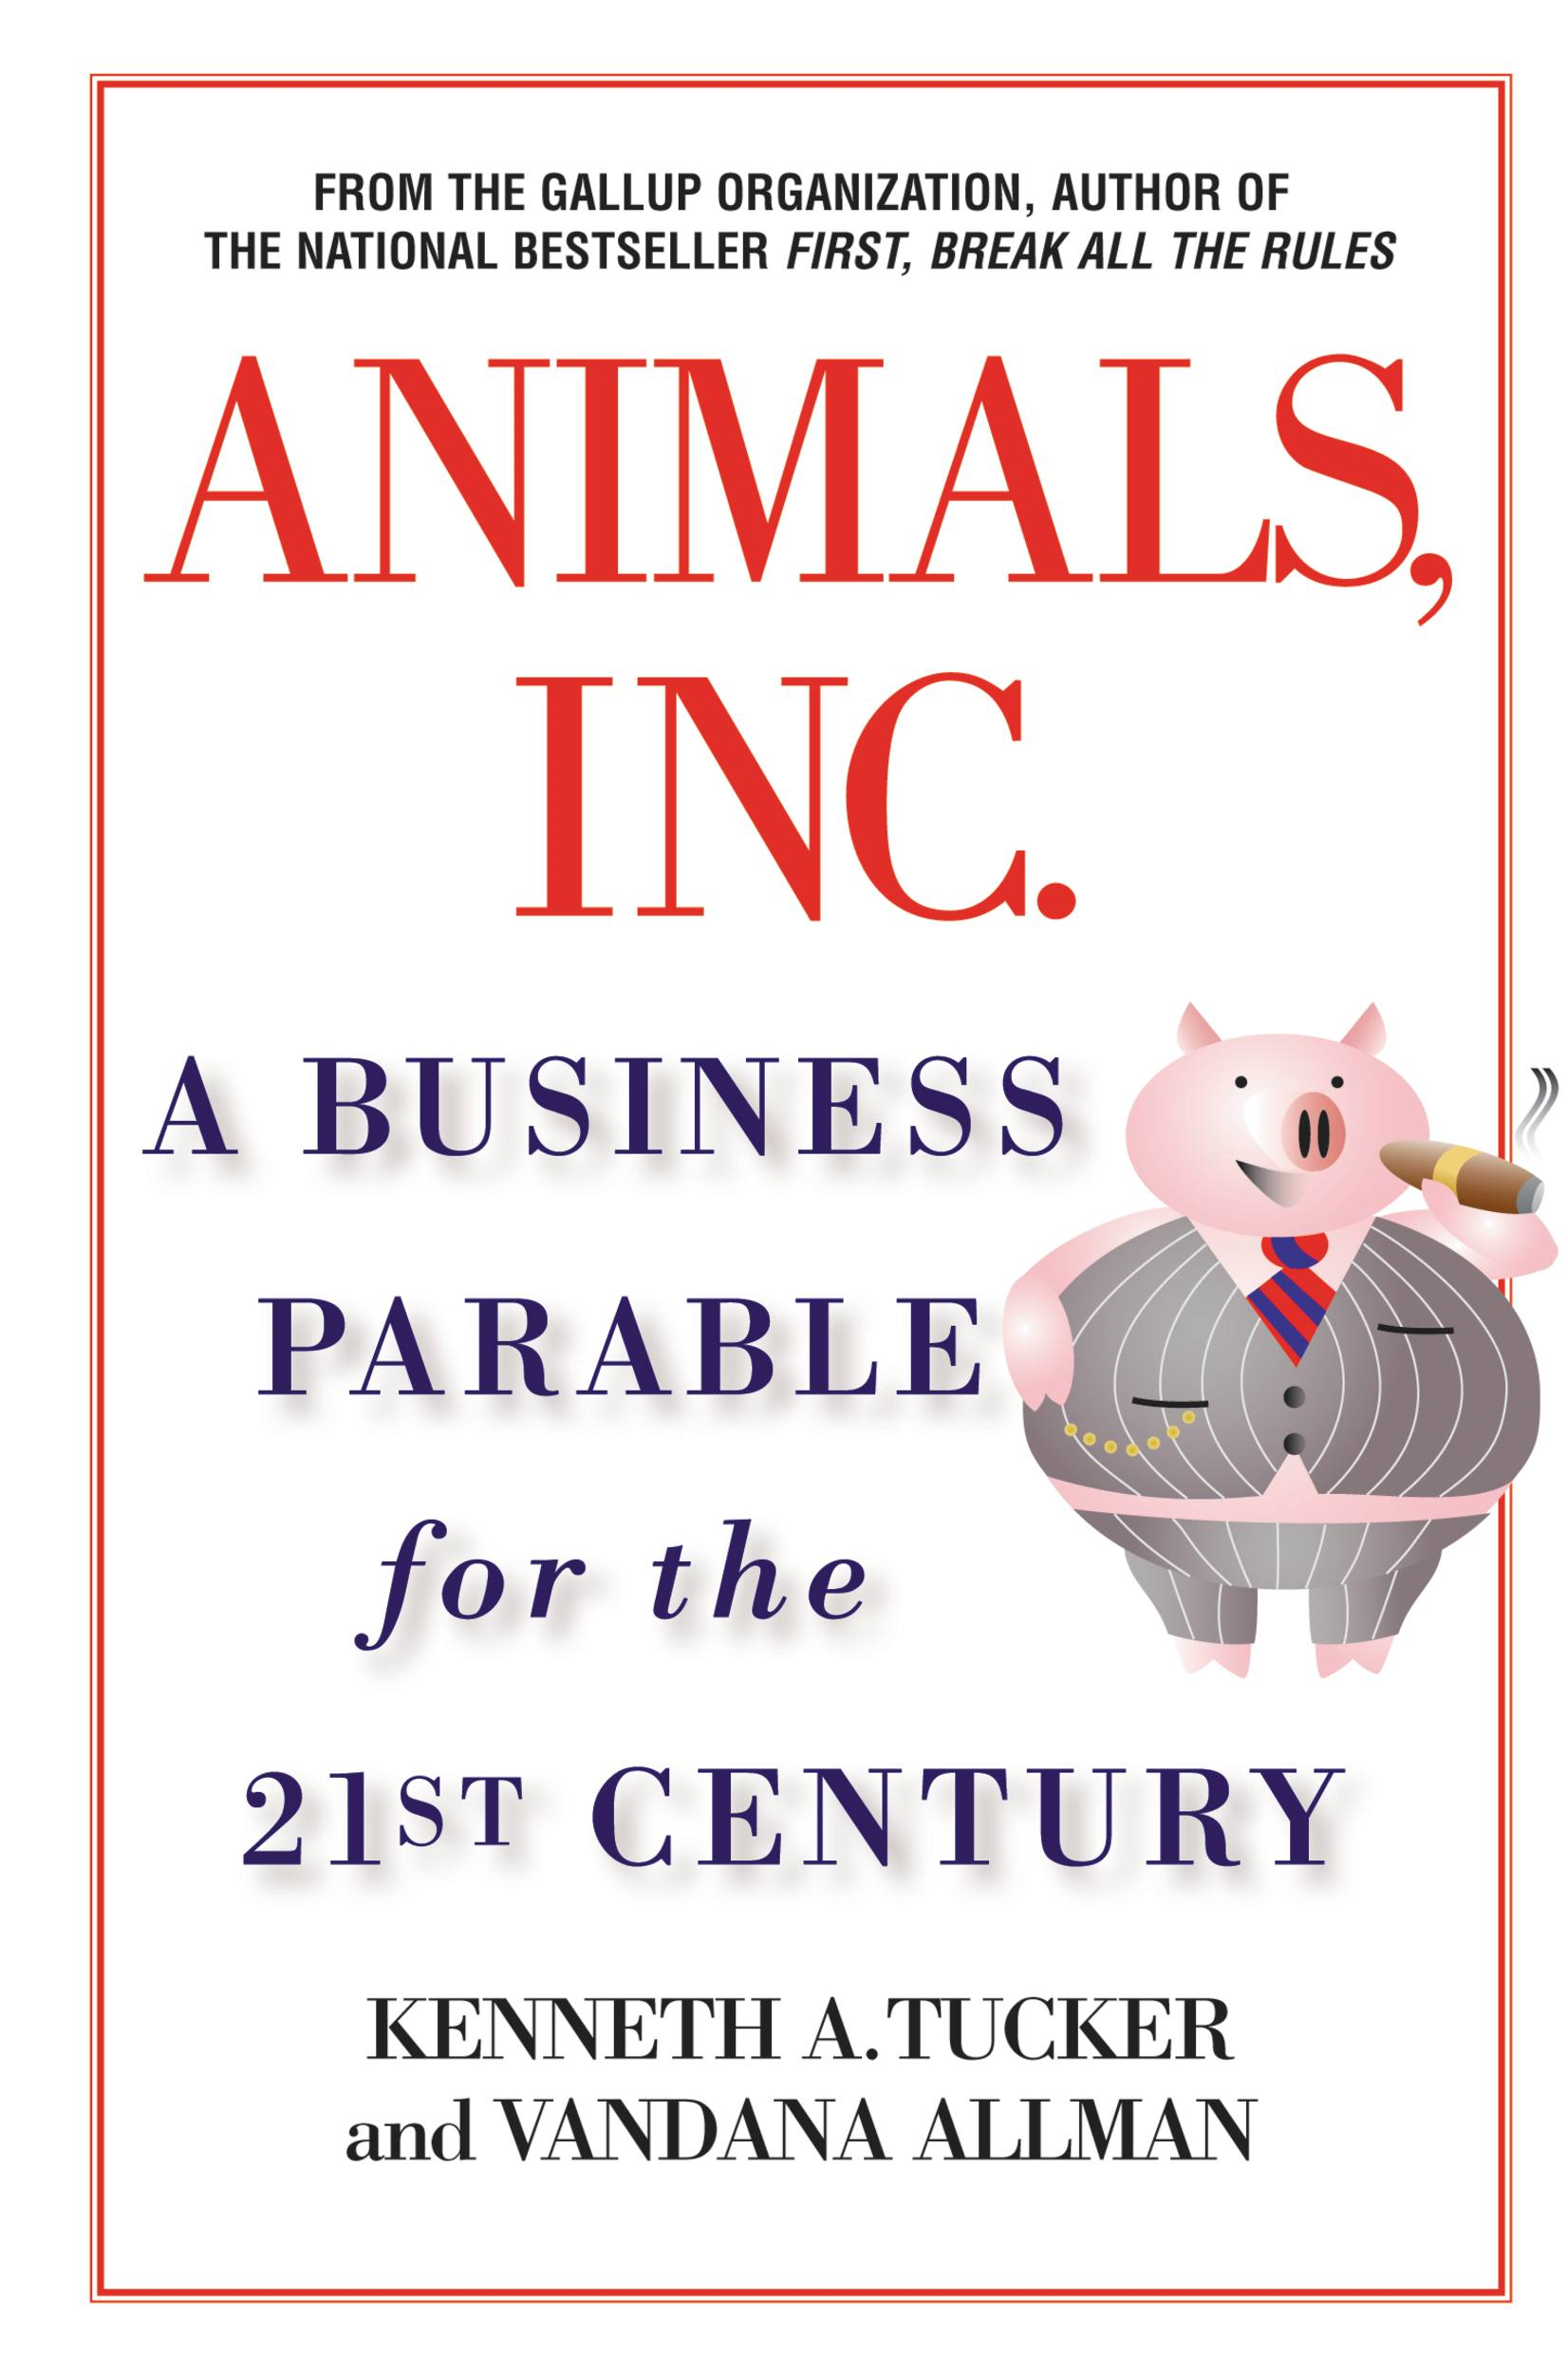 Animals Inc.